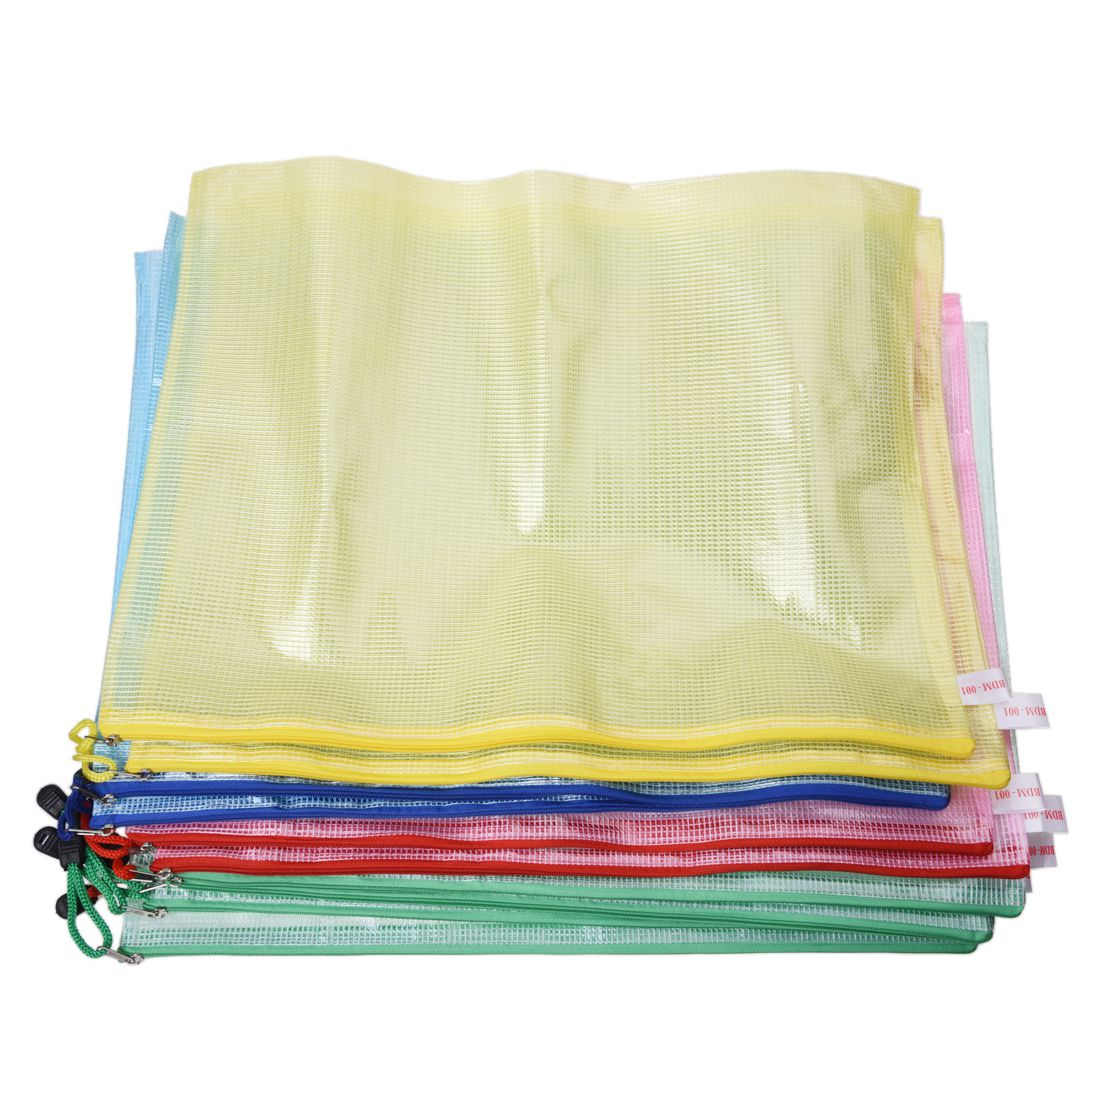 10 Pcs Netting Surface A3 Document File Holder Zipper Bag Multicolor10 Pcs Netting Surface A3 Document File Holder Zipper Bag Multicolor